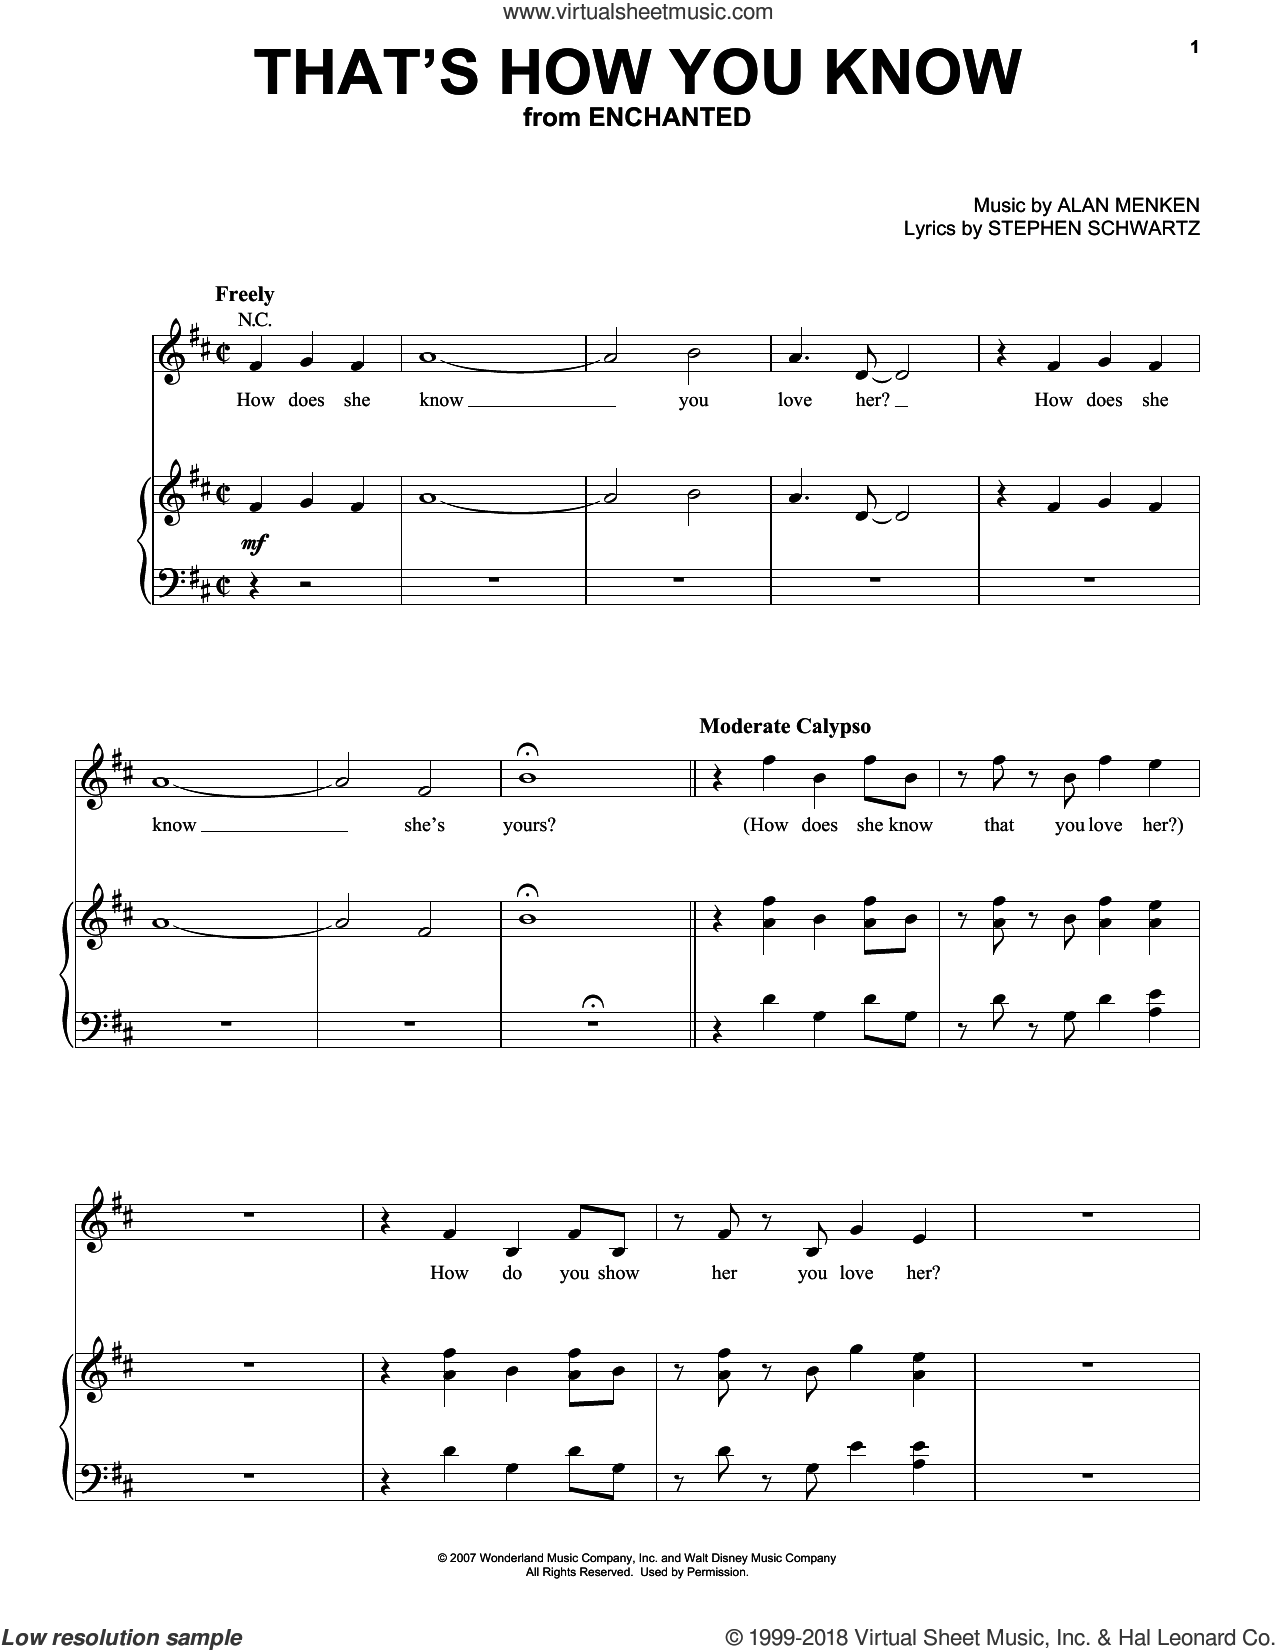 That's How You Know sheet music for voice, piano or guitar by Alan Menken